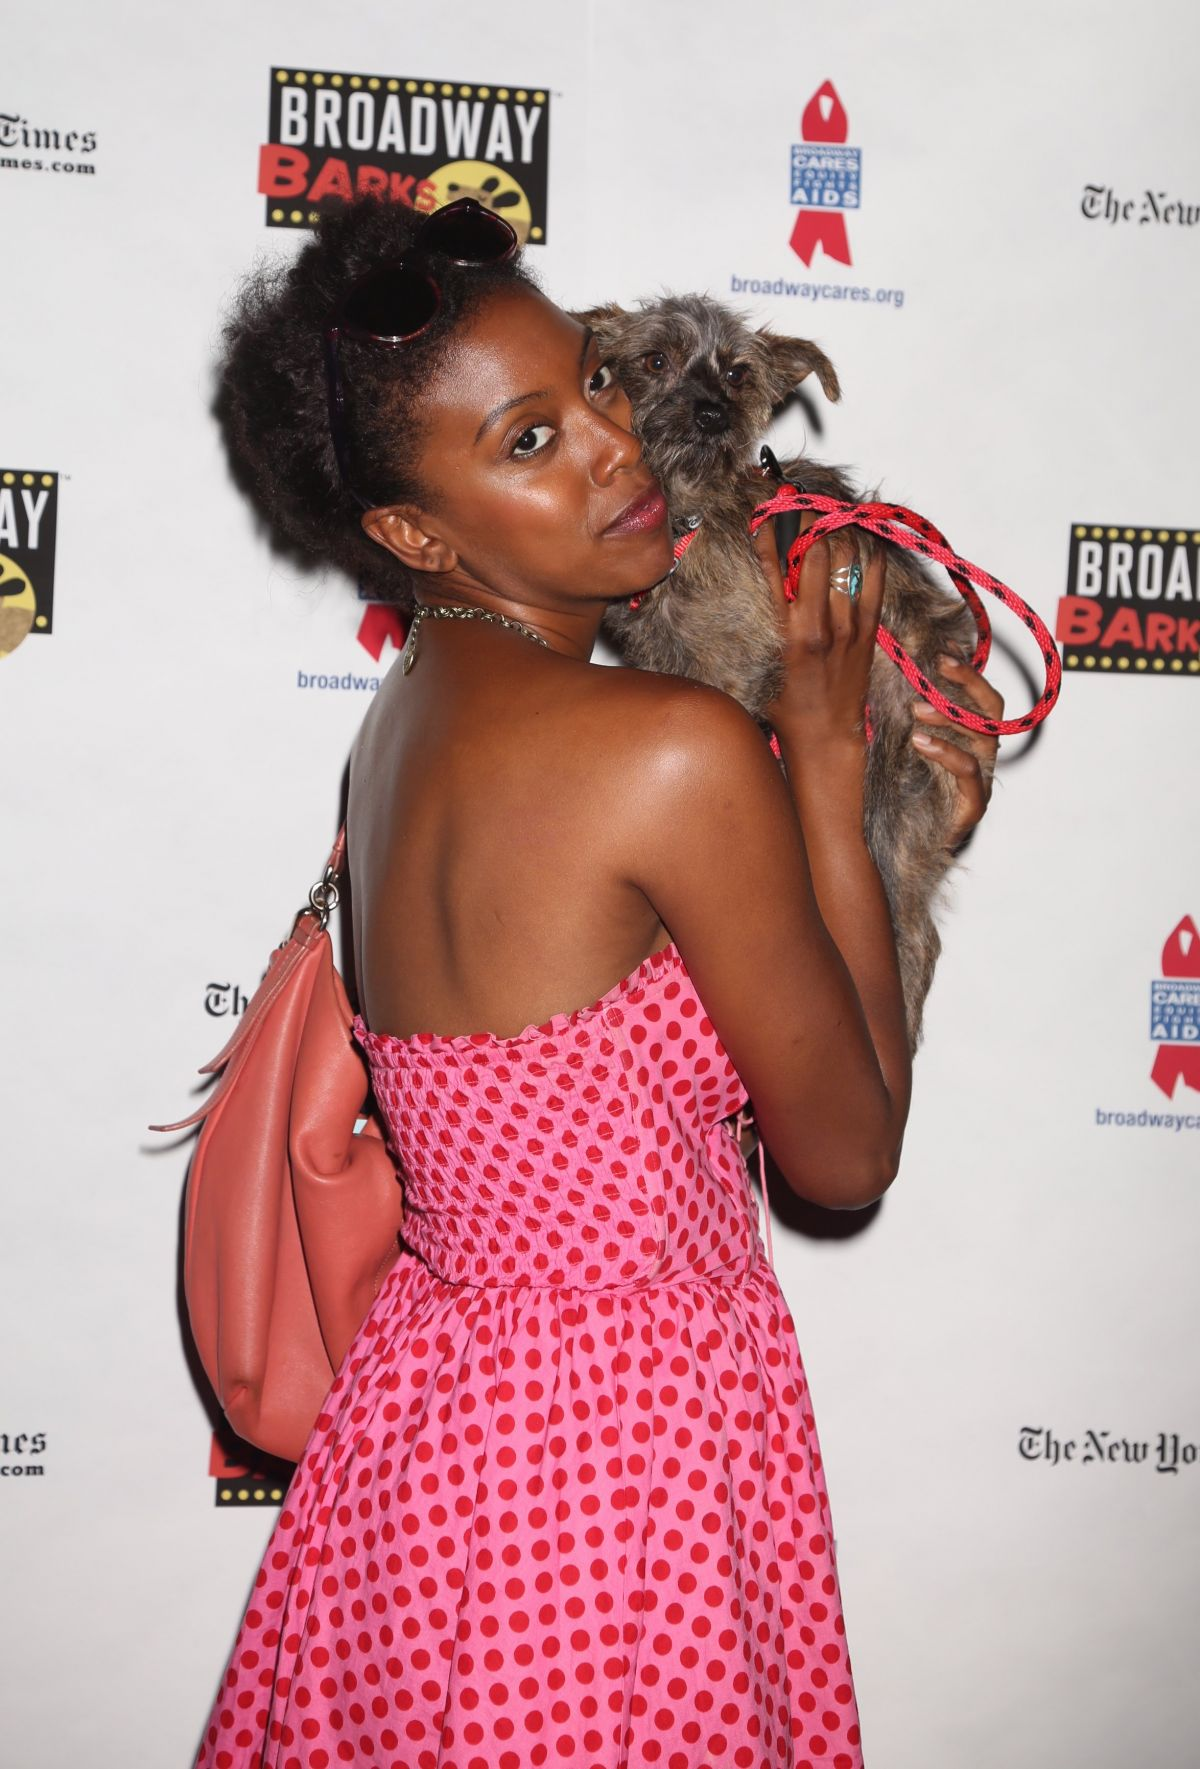 CONDOLA RASHAD at 19th Annual Broadway Barks Animal Adoption Event in New York 07/08/2017